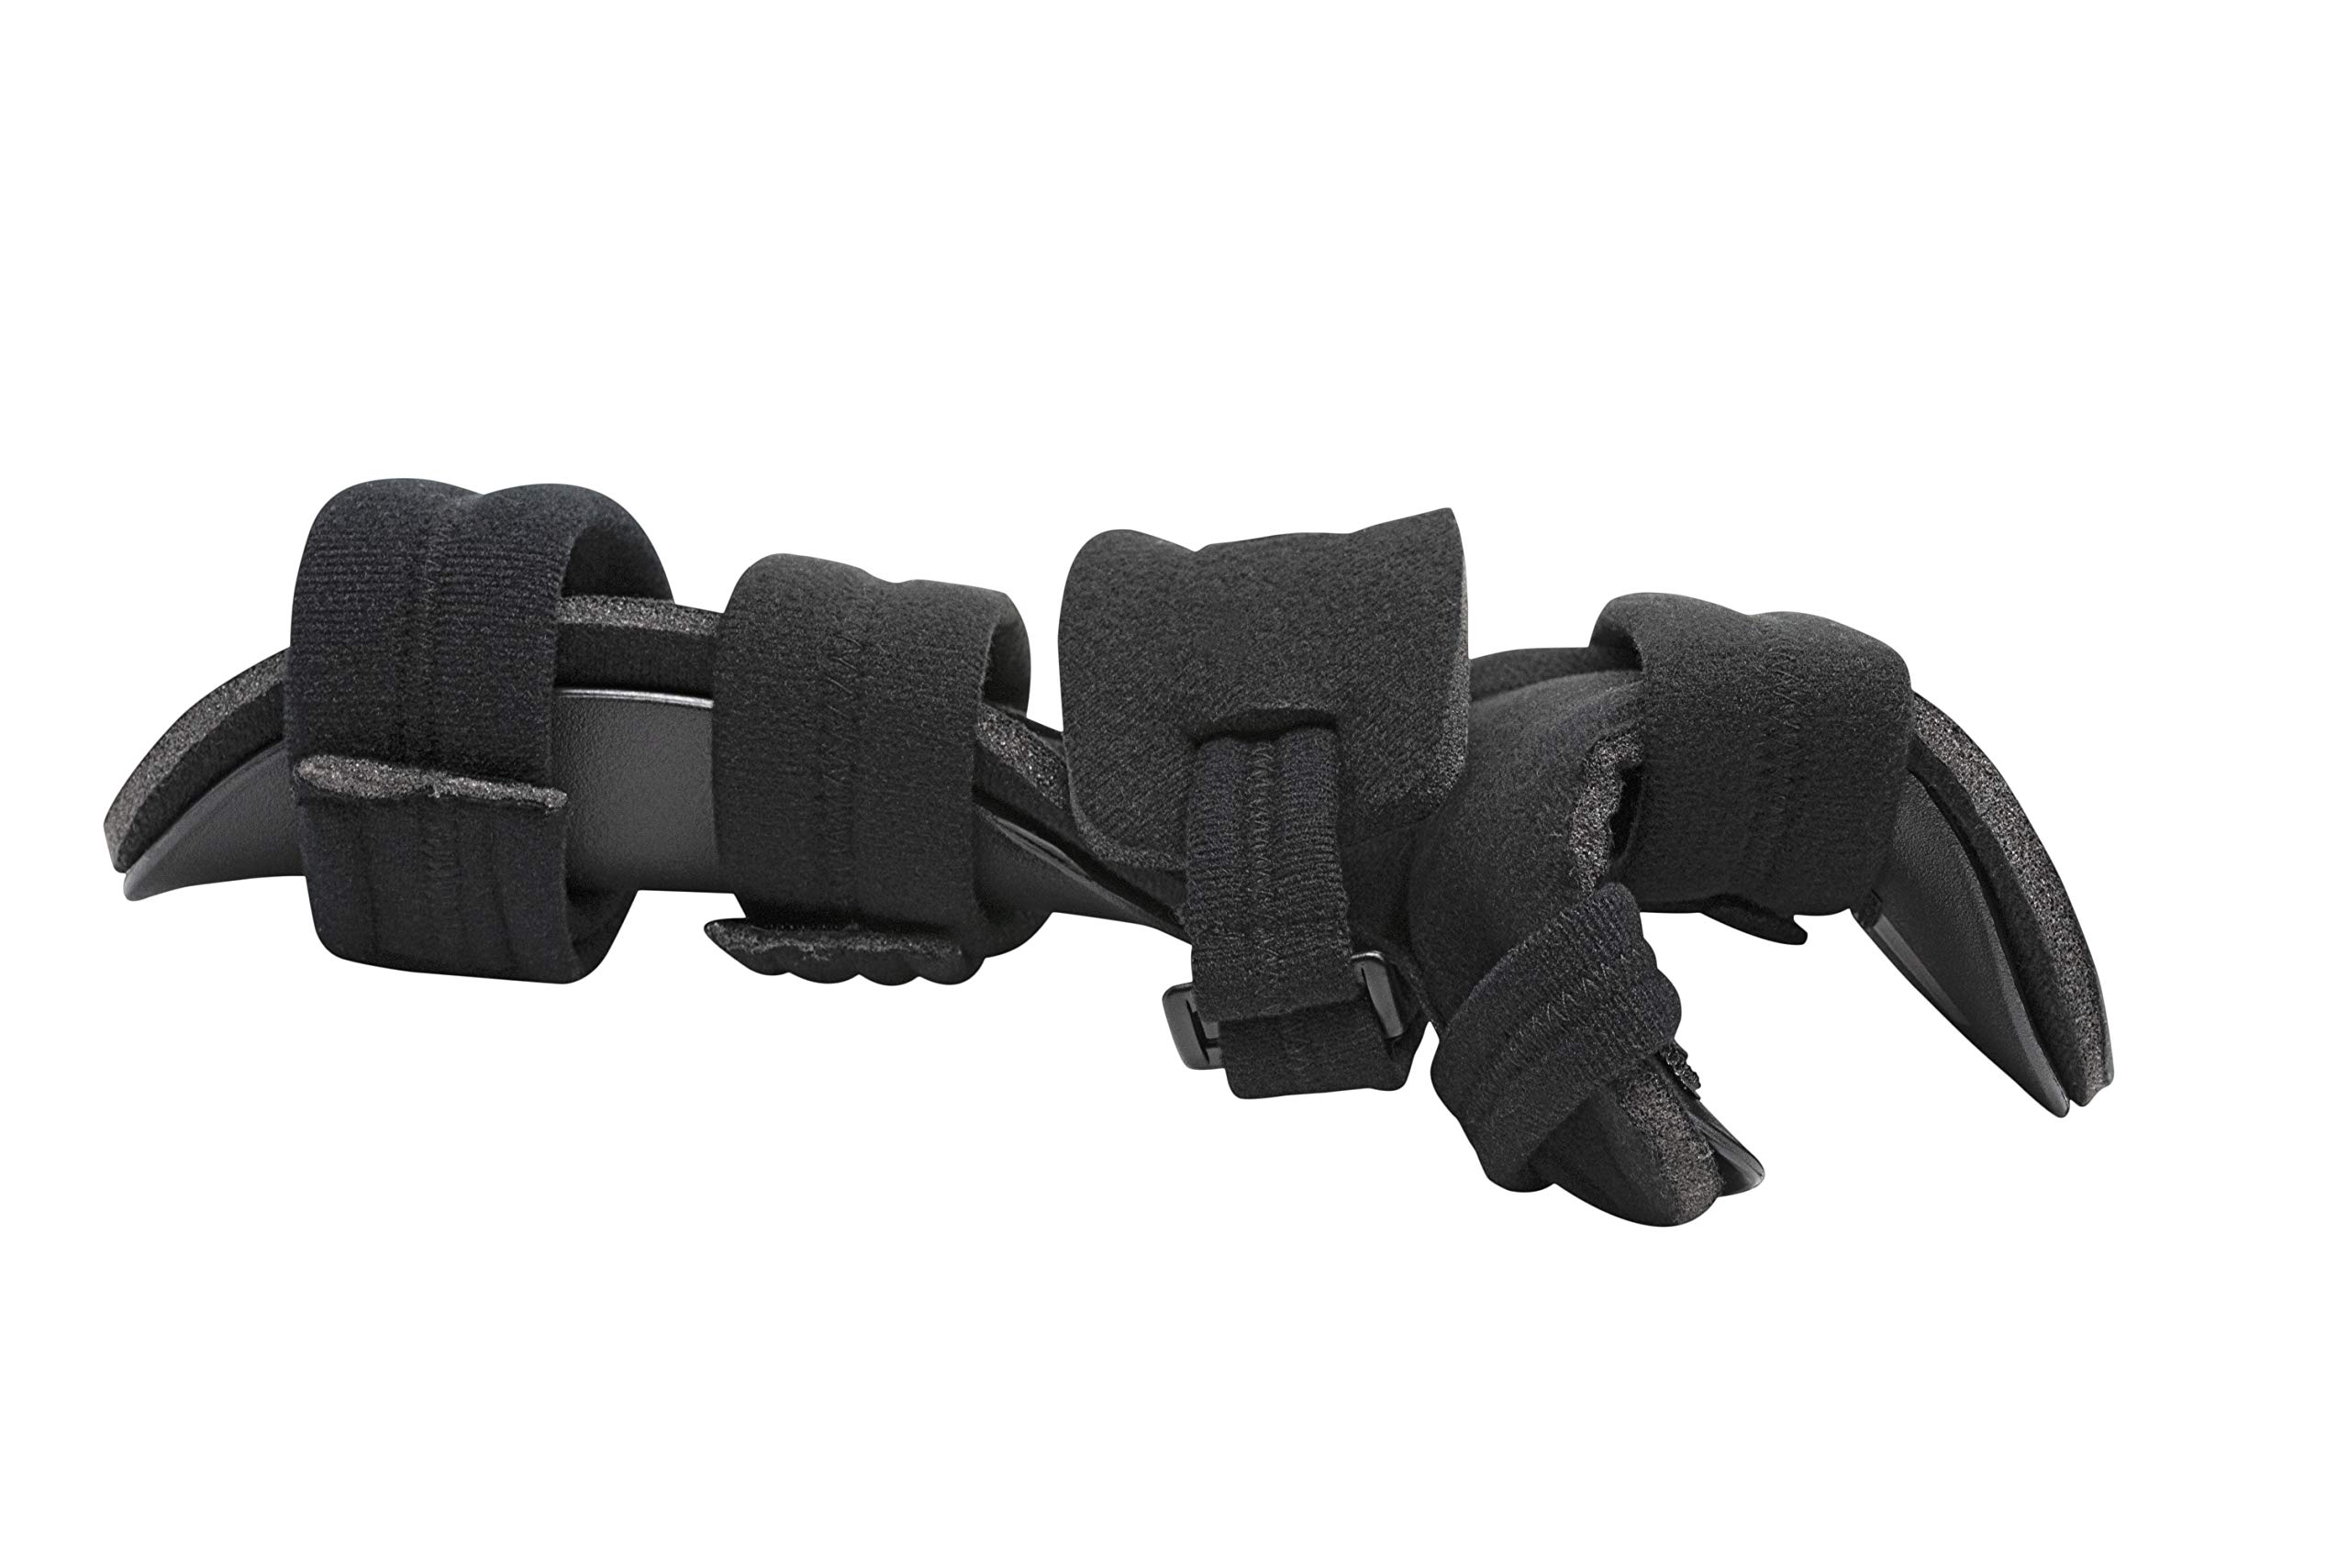 Stroke Hand Splint- Soft Resting Hand Splint for Flexion Contractures, Comfortably Stretch and Rest Hands for Long Term Ease with Functional Hand Splint, an American Heritage Industries(Left, Small) by American Heritage Industries (Image #3)